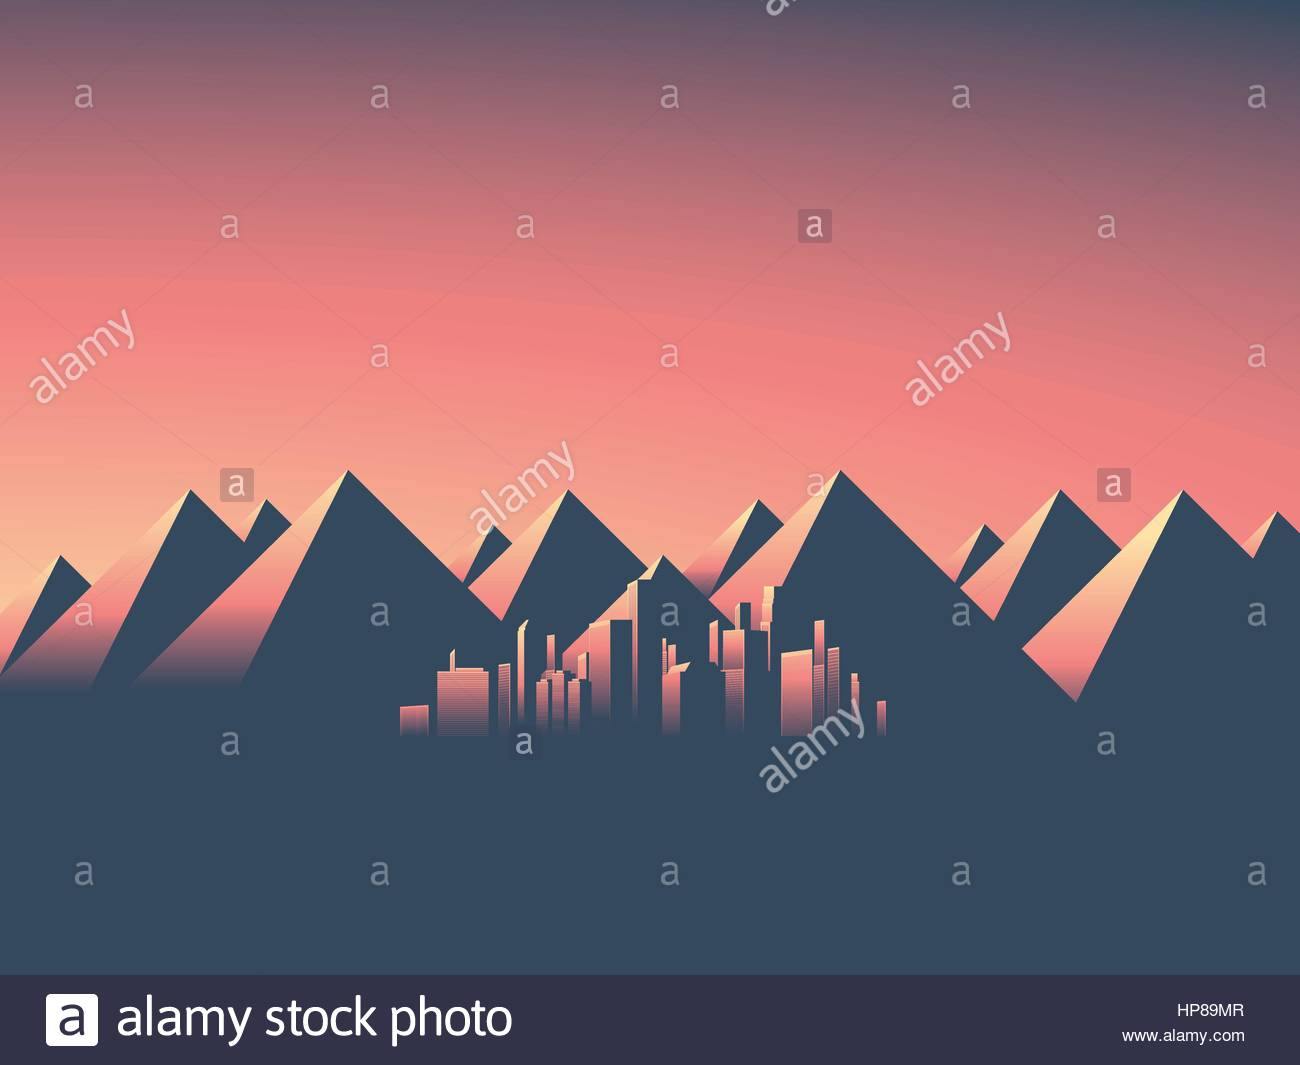 Modern cityscape with skyscrapers skyline in sunset colors. Mountain landscape background with high mountain range. Stock Vector